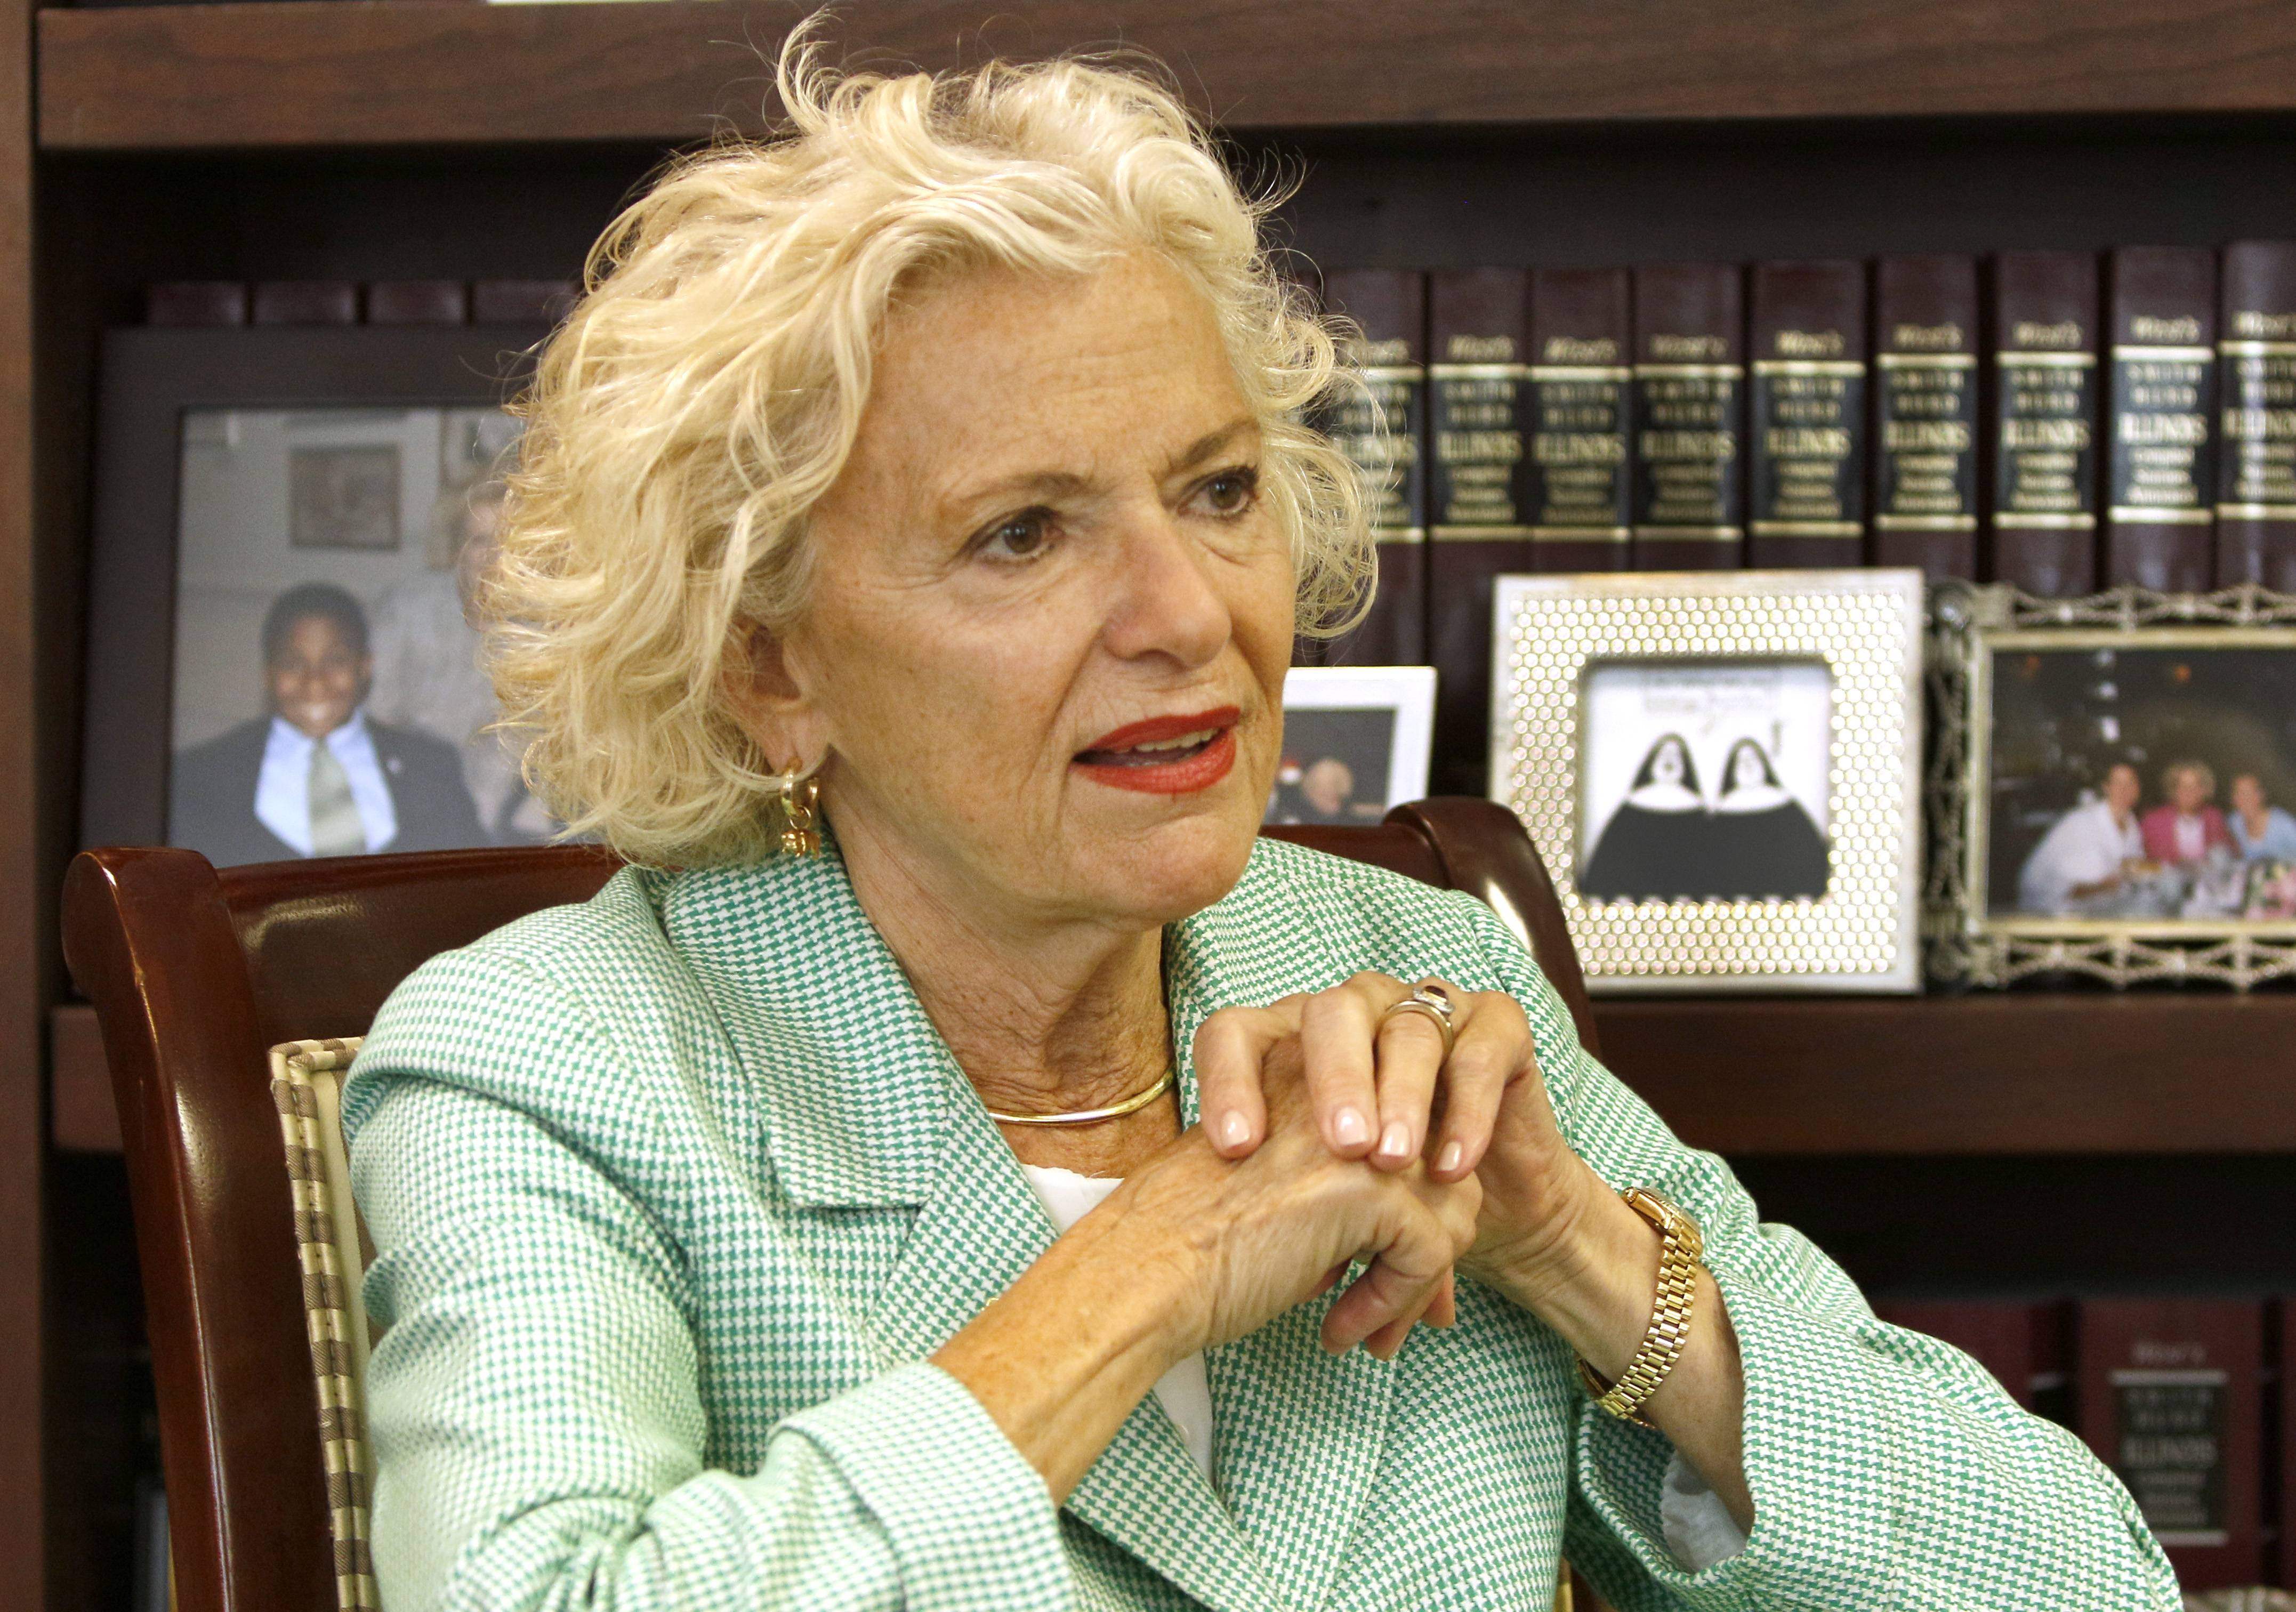 Illinois Supreme Court Justice Anne Burke says changes are needed in the Cook County circuit court system.